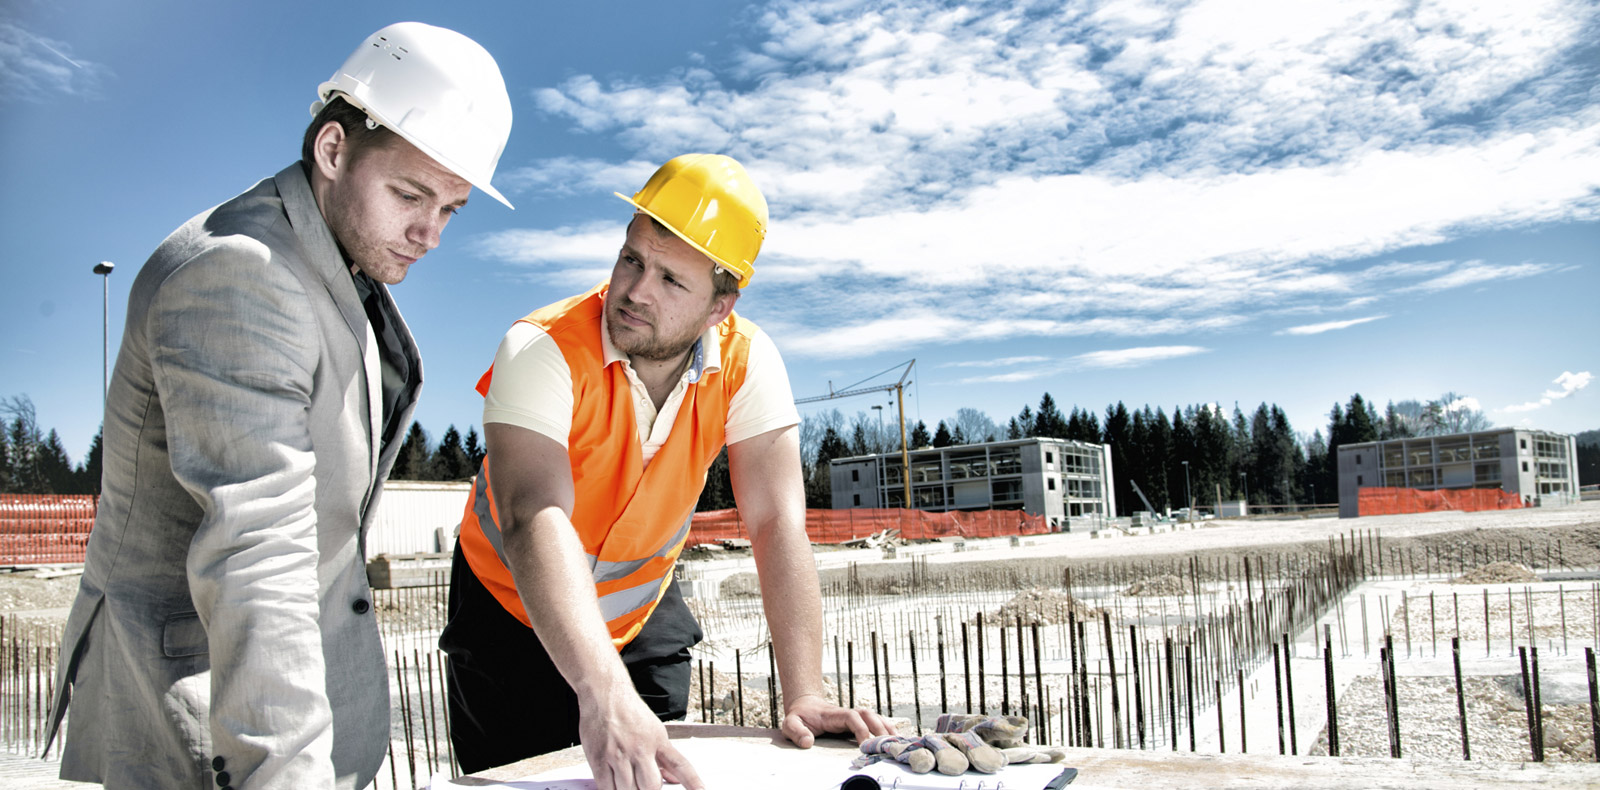 Industrial Nebosh Safety Courses in Hyderabad, India - gulfacademy